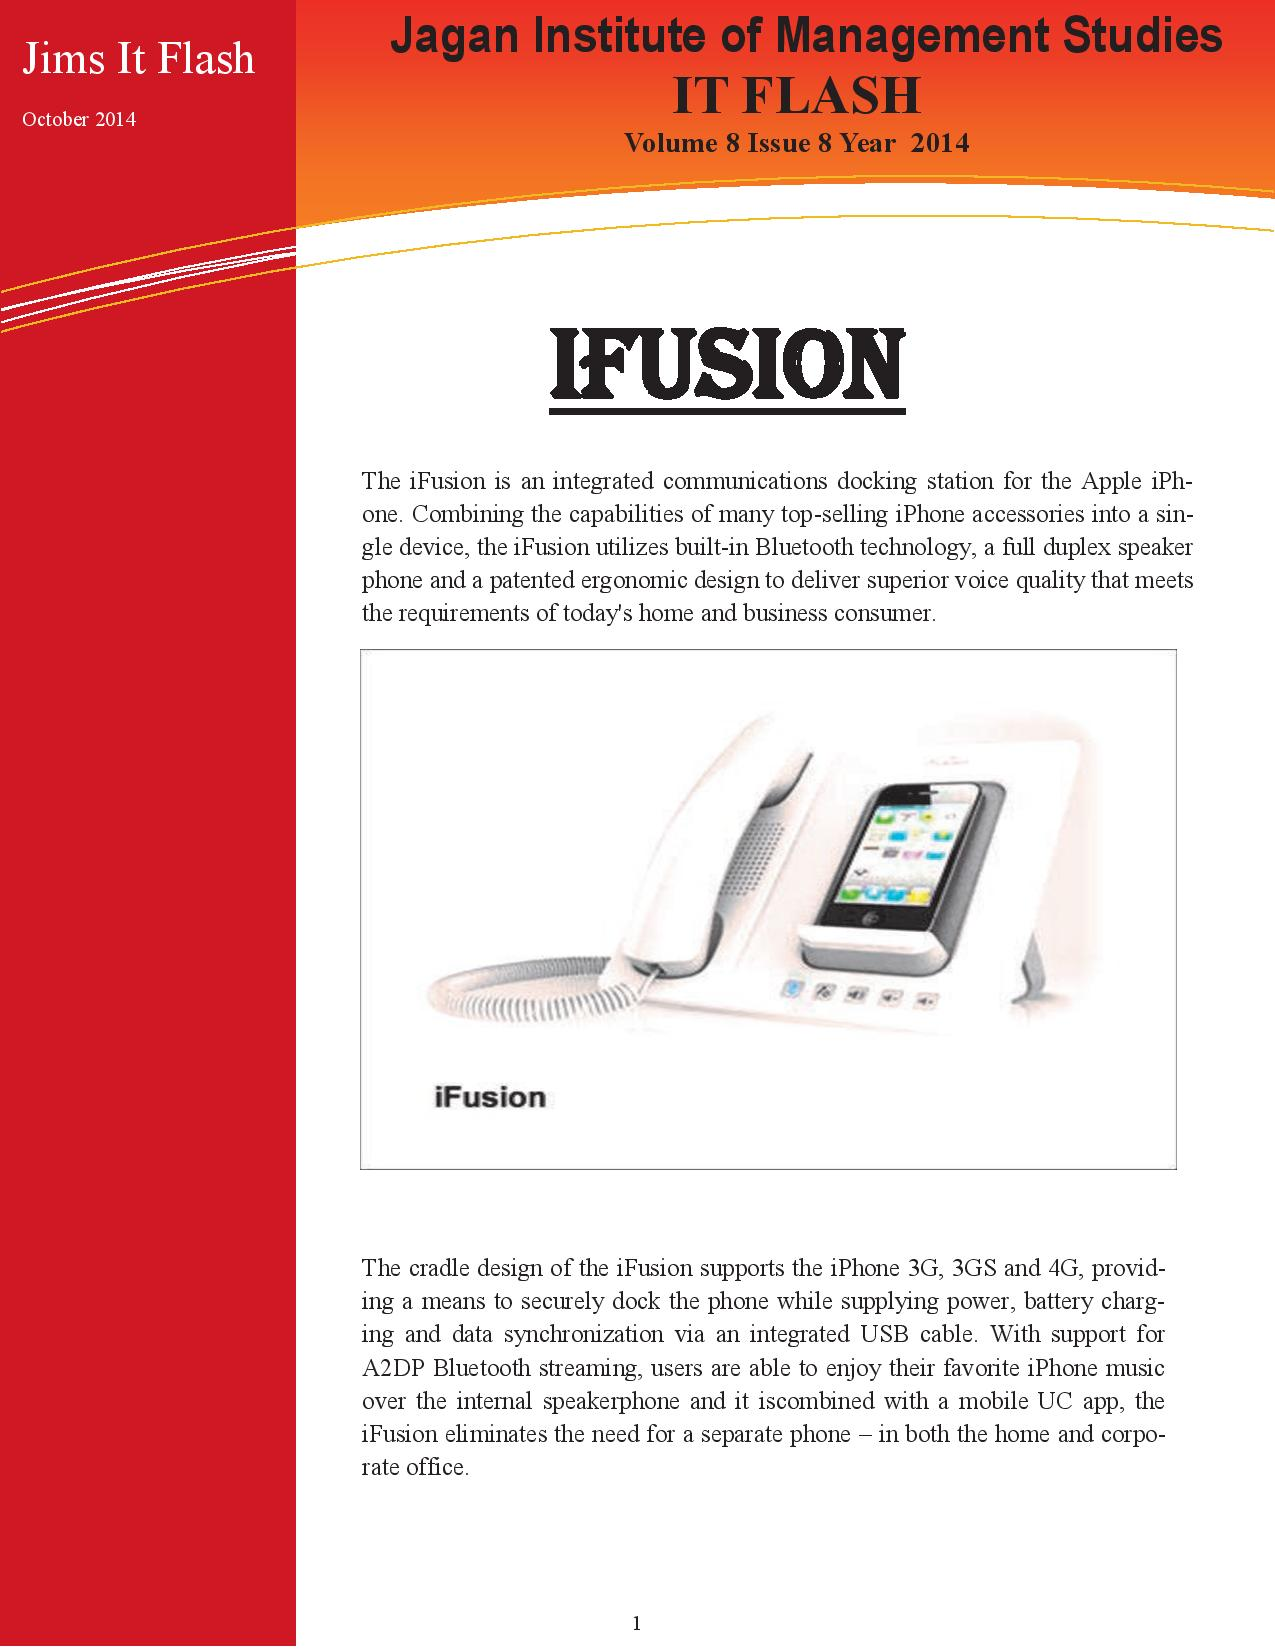 JIMS IT Flash Newsletter Technology in Glimpse